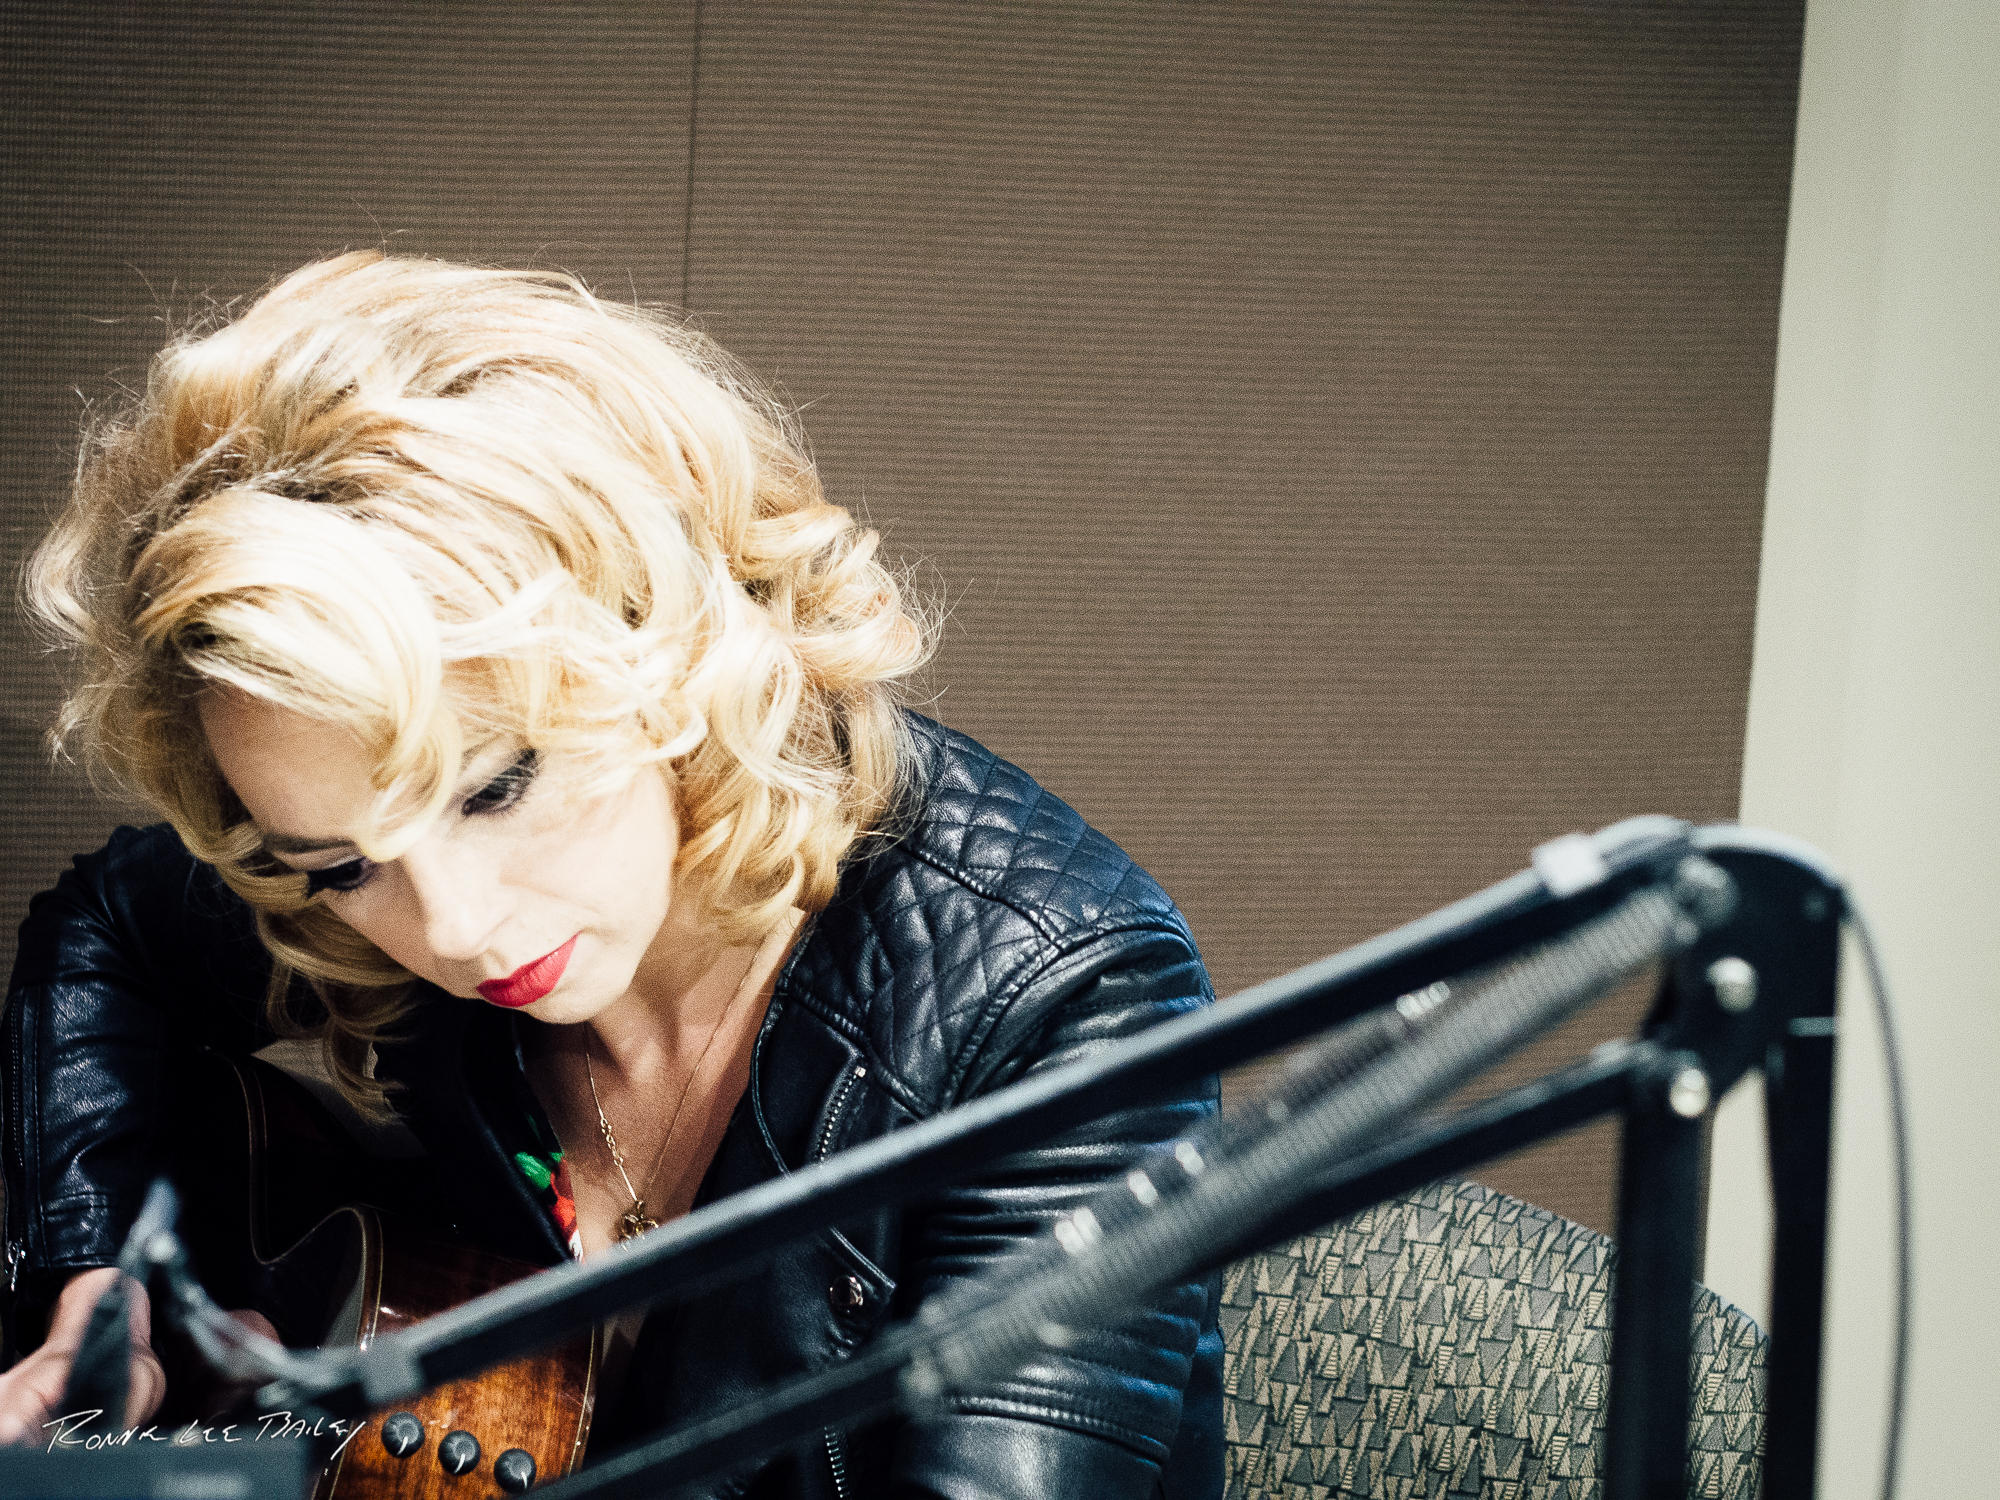 Samantha fish wvtf for Samantha fish chills and fever